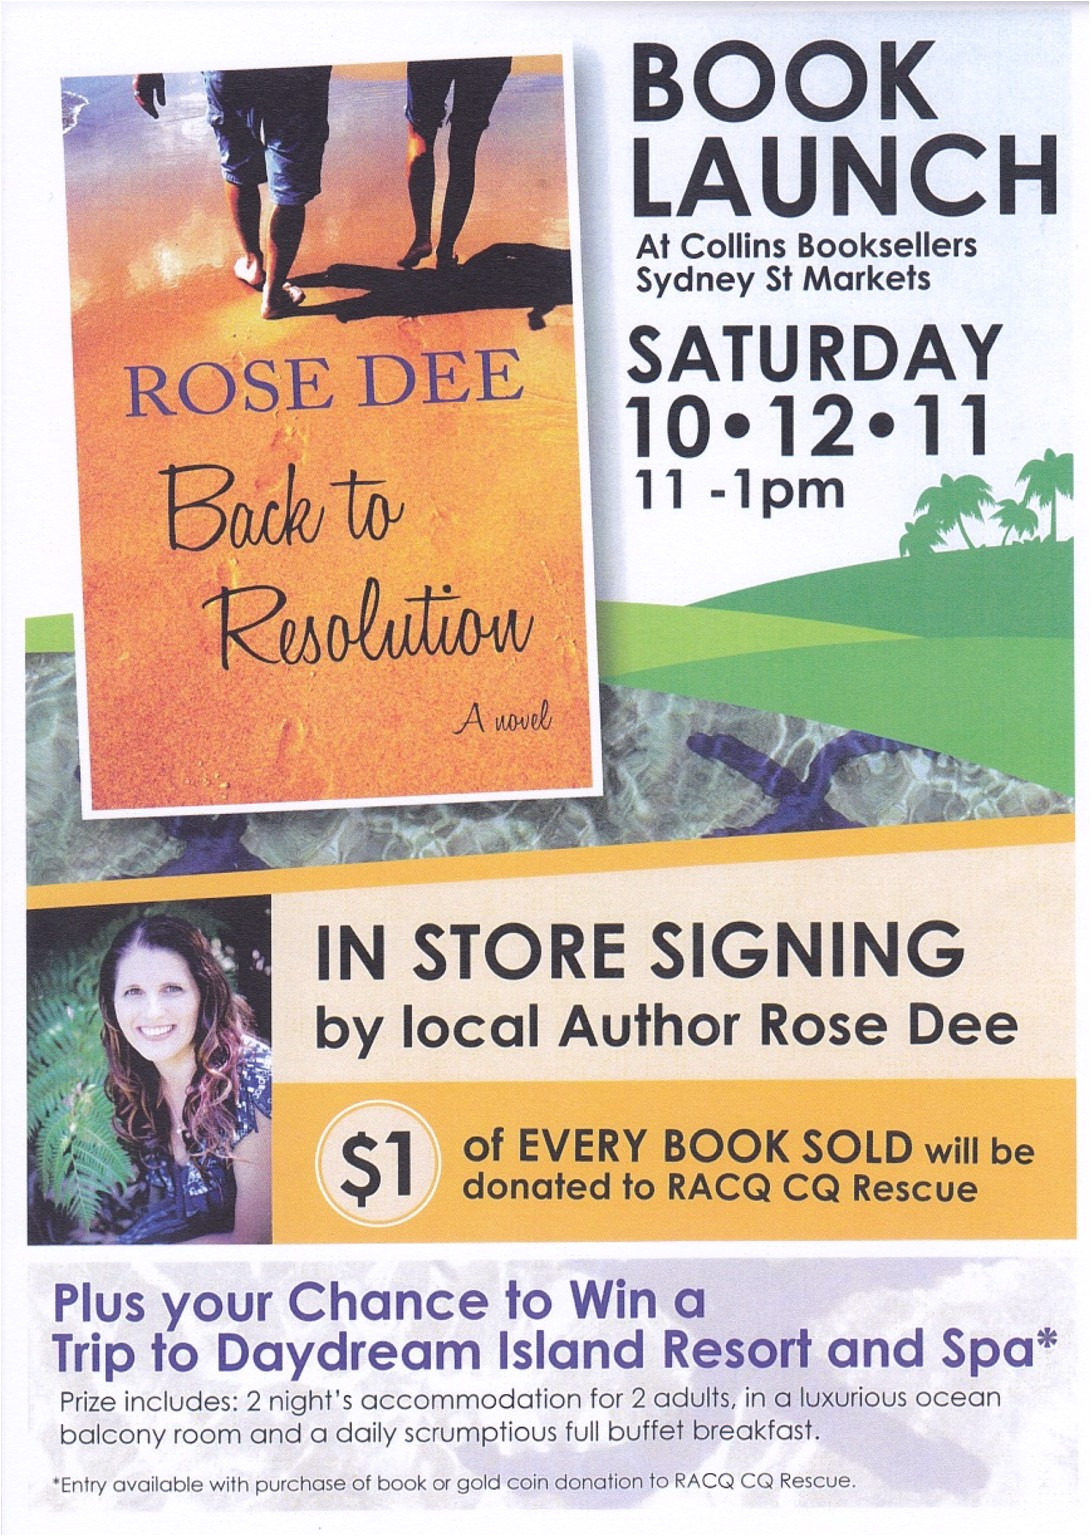 Book Launch Flyer Template December 2011 Rose Dee Author Redemptive Fiction